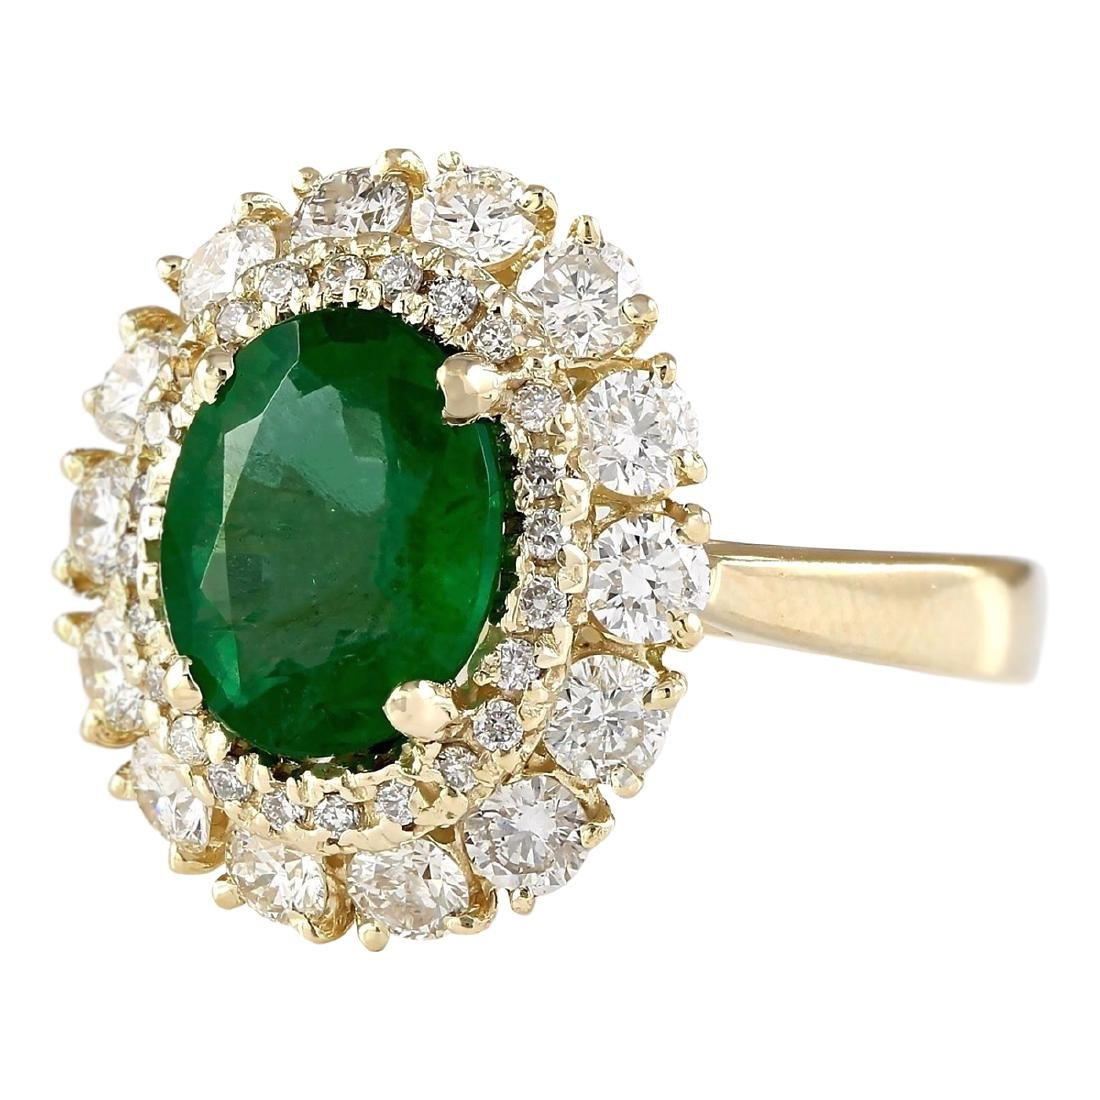 3.60 CTW Natural Emerald And Diamond Ring In 18K Yellow - 2